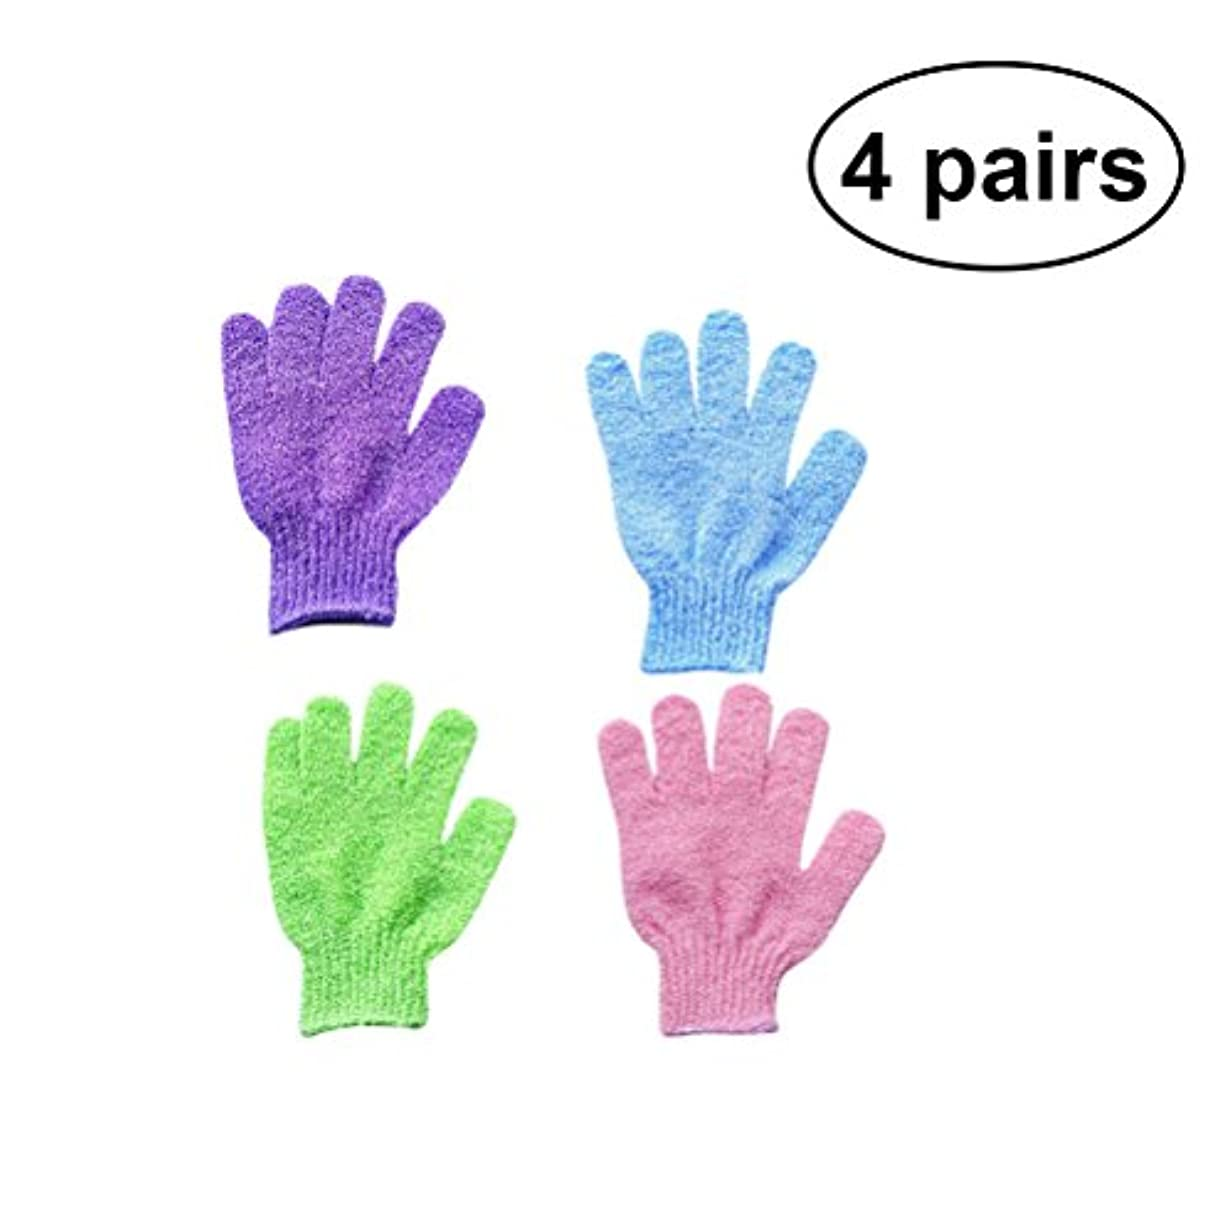 曲そこから鉄Healifty 4 Pairs Exfoliating Bath Gloves Shower Mitts Exfoliating Body Spa Massage Dead Skin Cell Remover